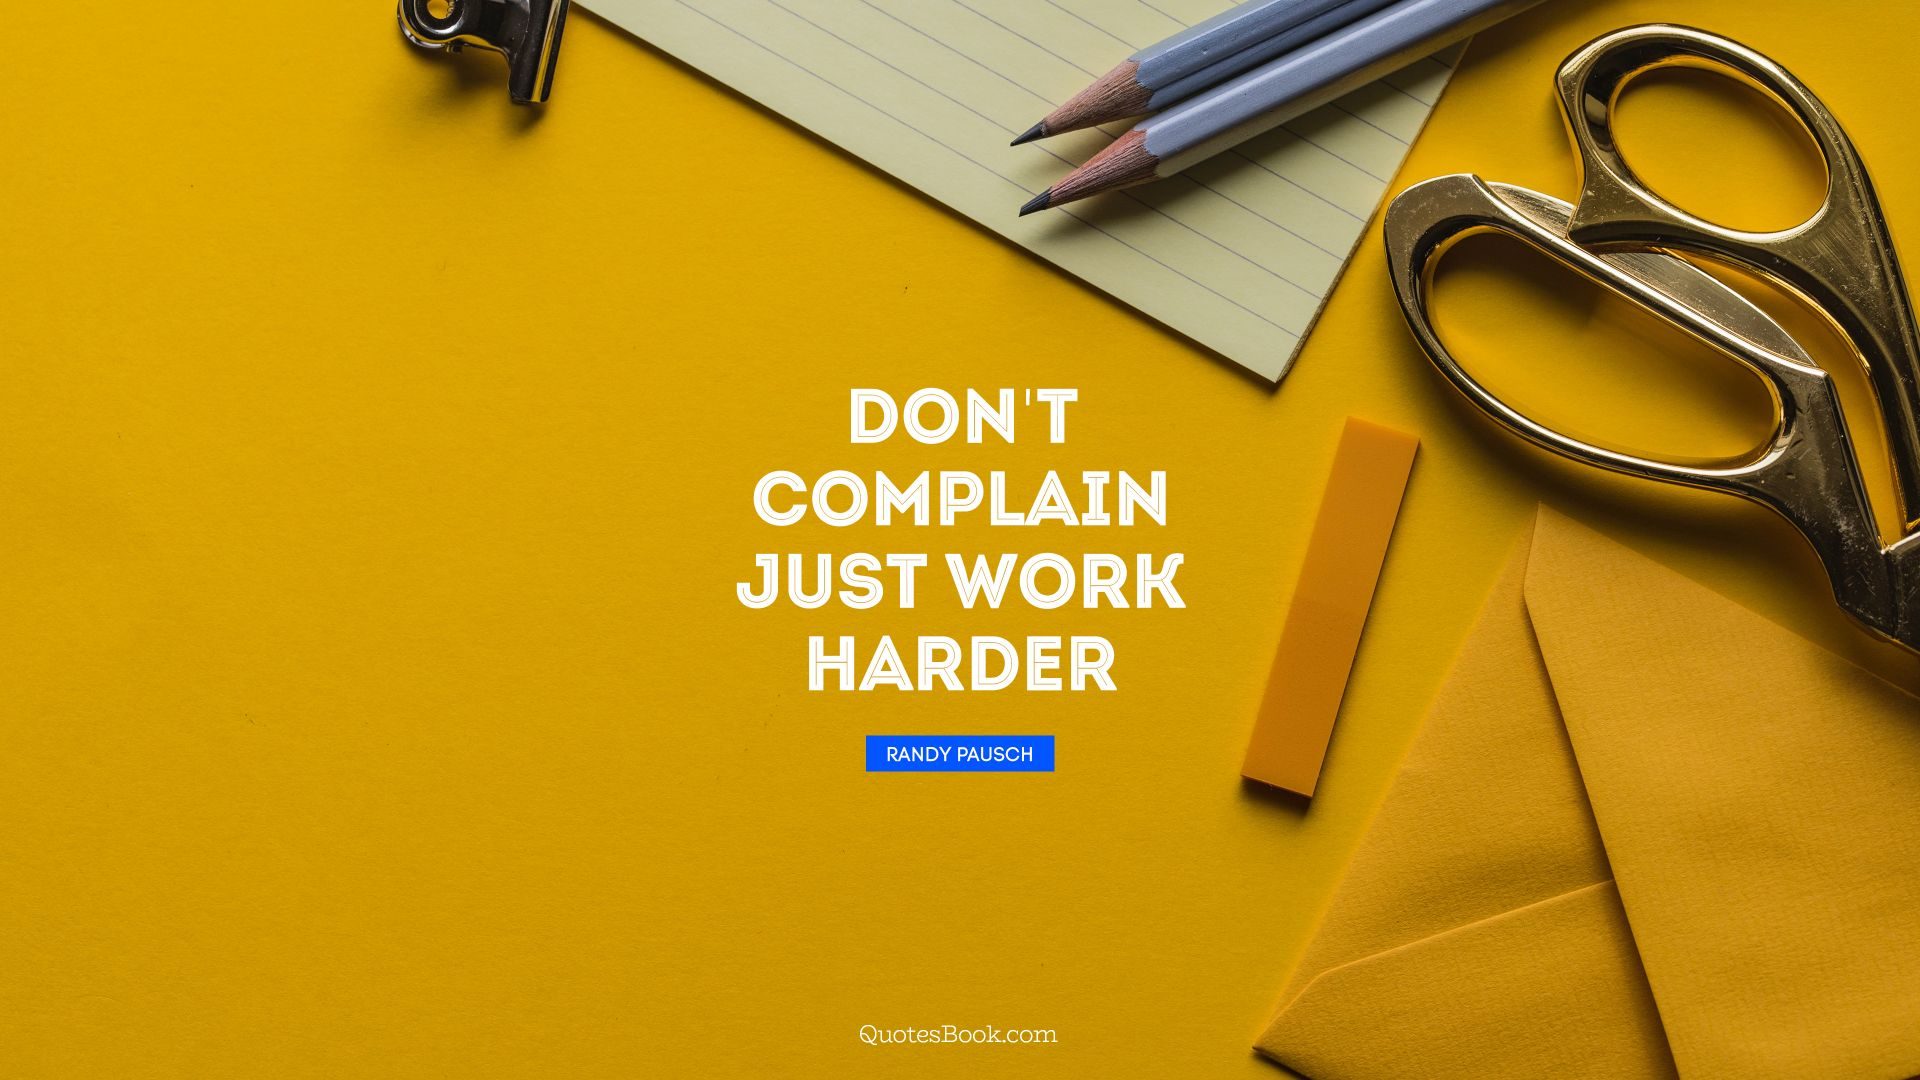 Don't complain just work harder. - Quote by Randy Pausch